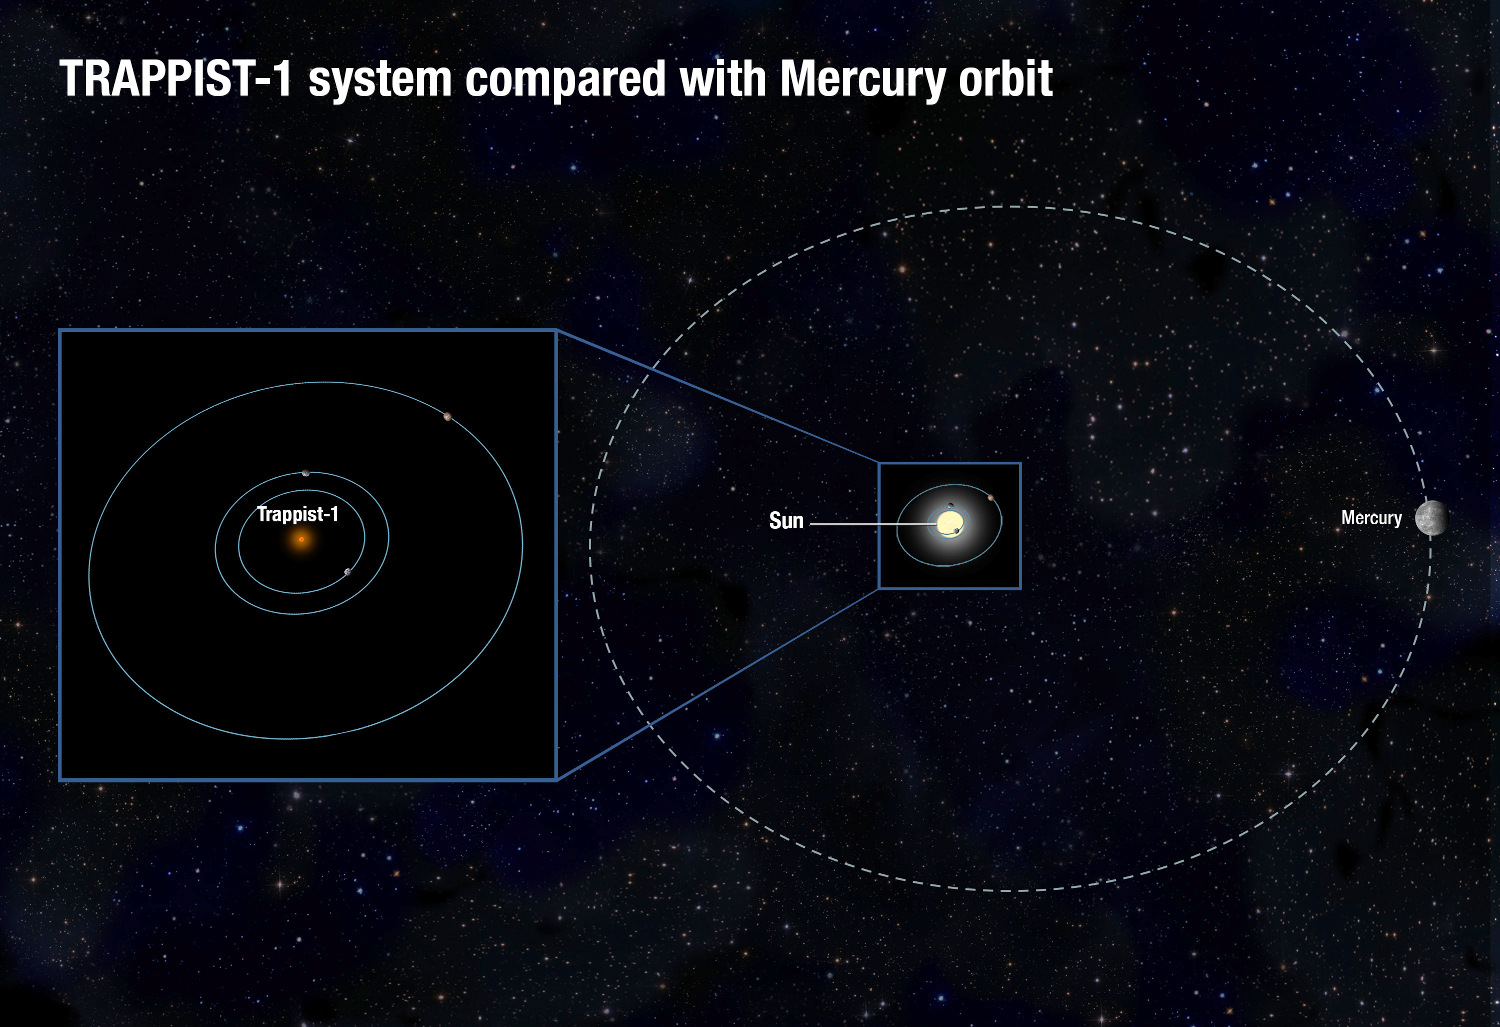 The TRAPPIST-1 system, consisting of several known Earth-sized planets orbiting a red dwarf star, would fit deep inside the orbit of the Sun's innermost planet, Mercury. Image credit: NASA, ESA, and A. Feild (STScI).